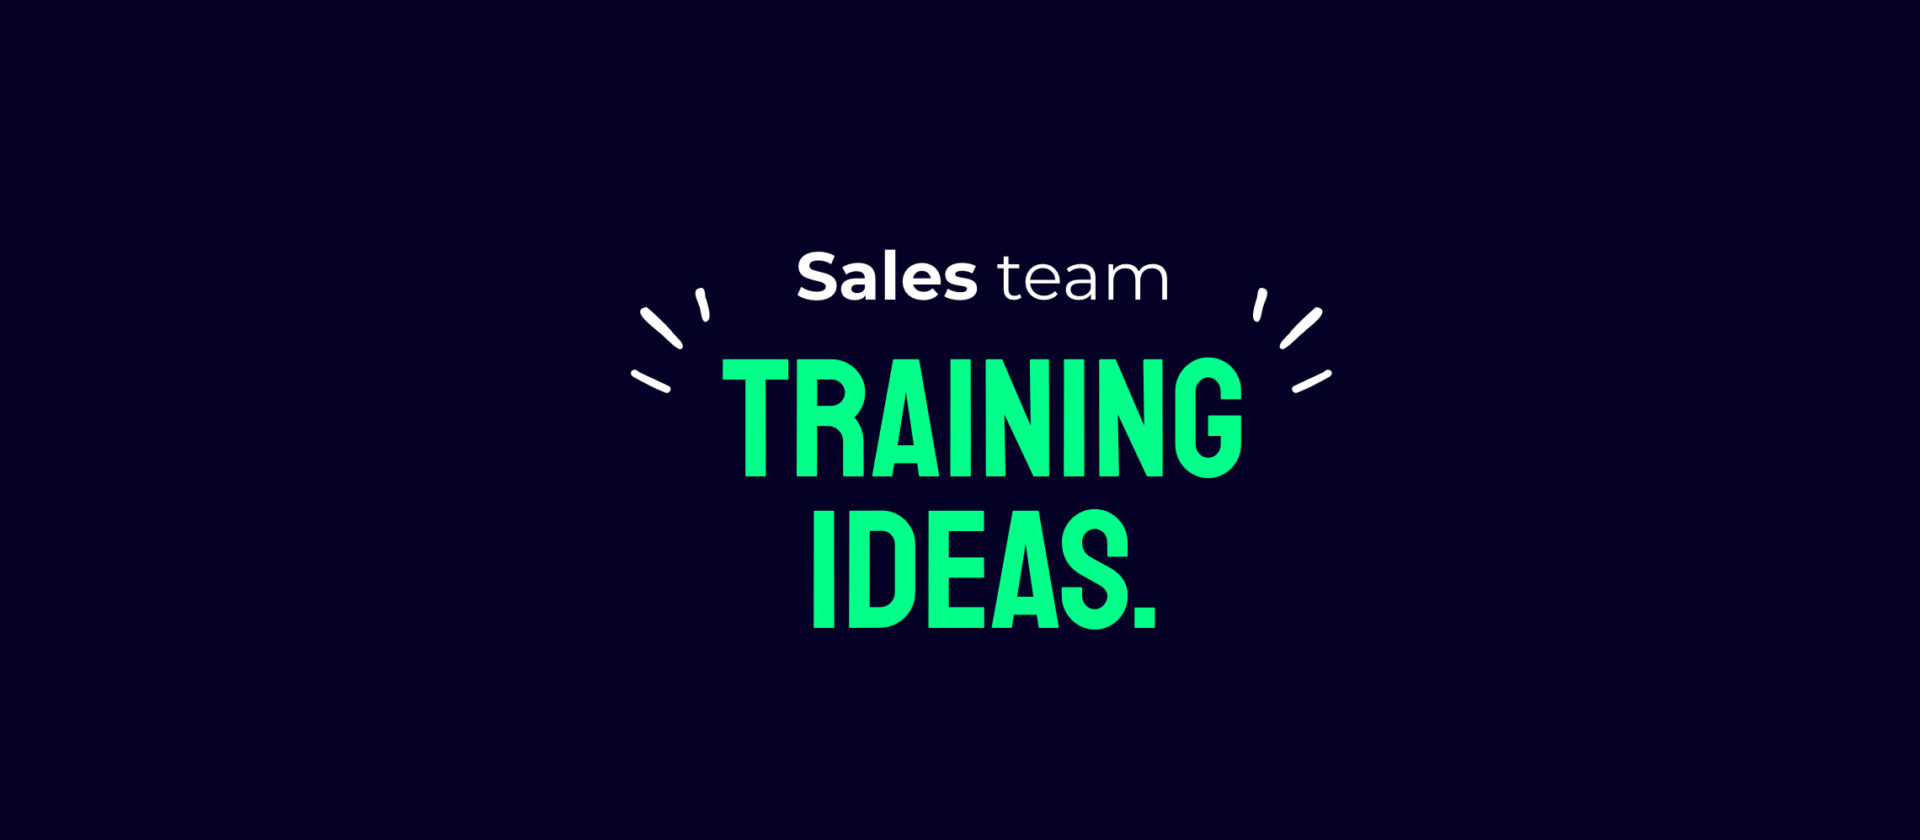 Sales team training ideas you probably haven't thought of.